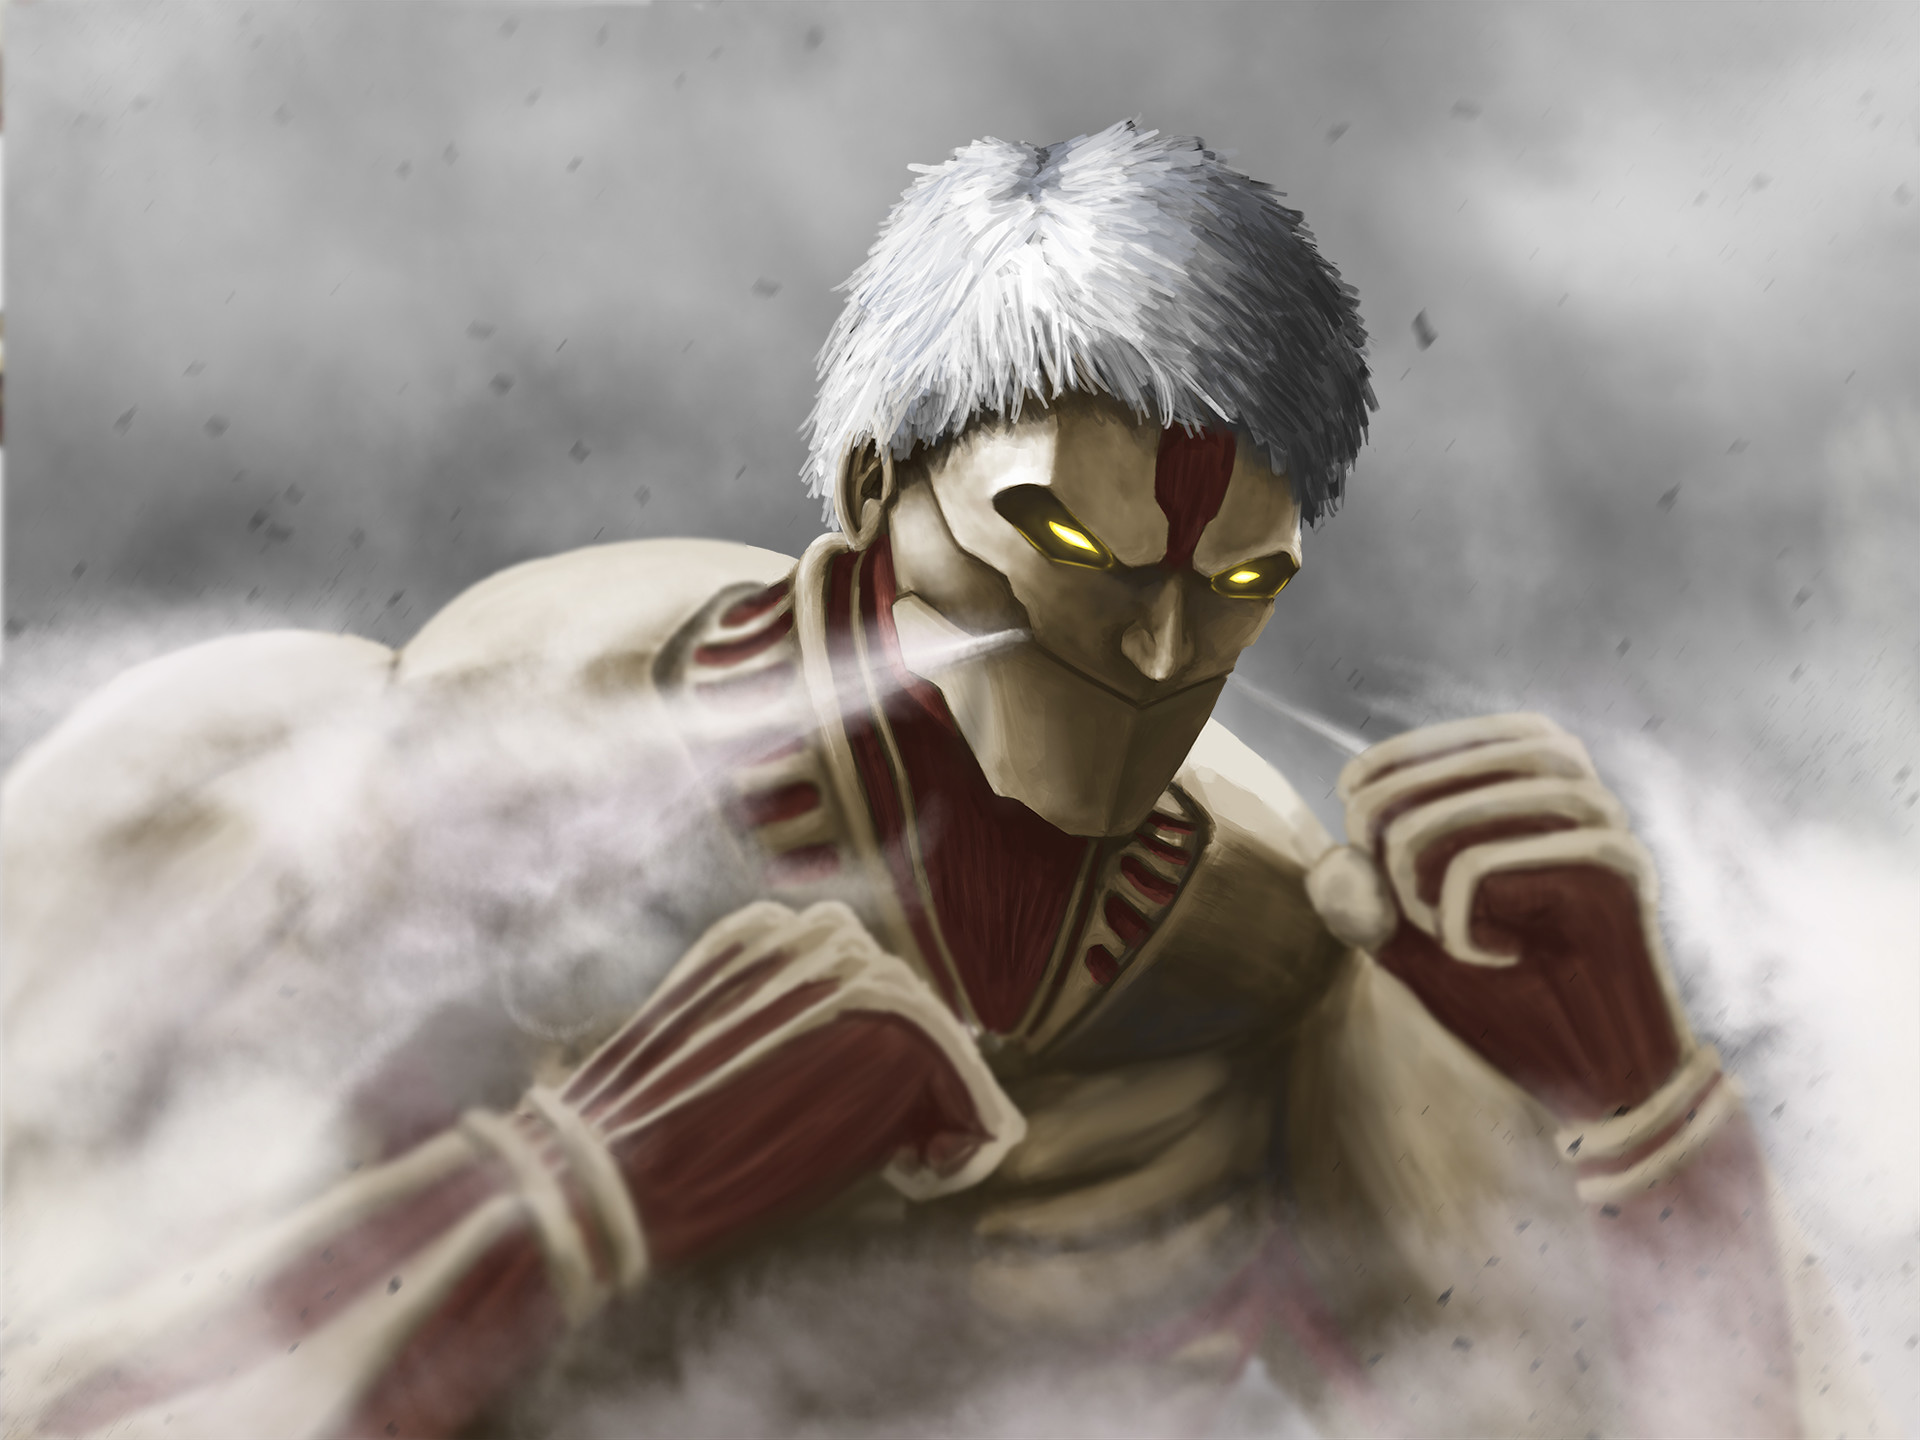 Armored Titan Wallpaper Posted By Ethan Anderson